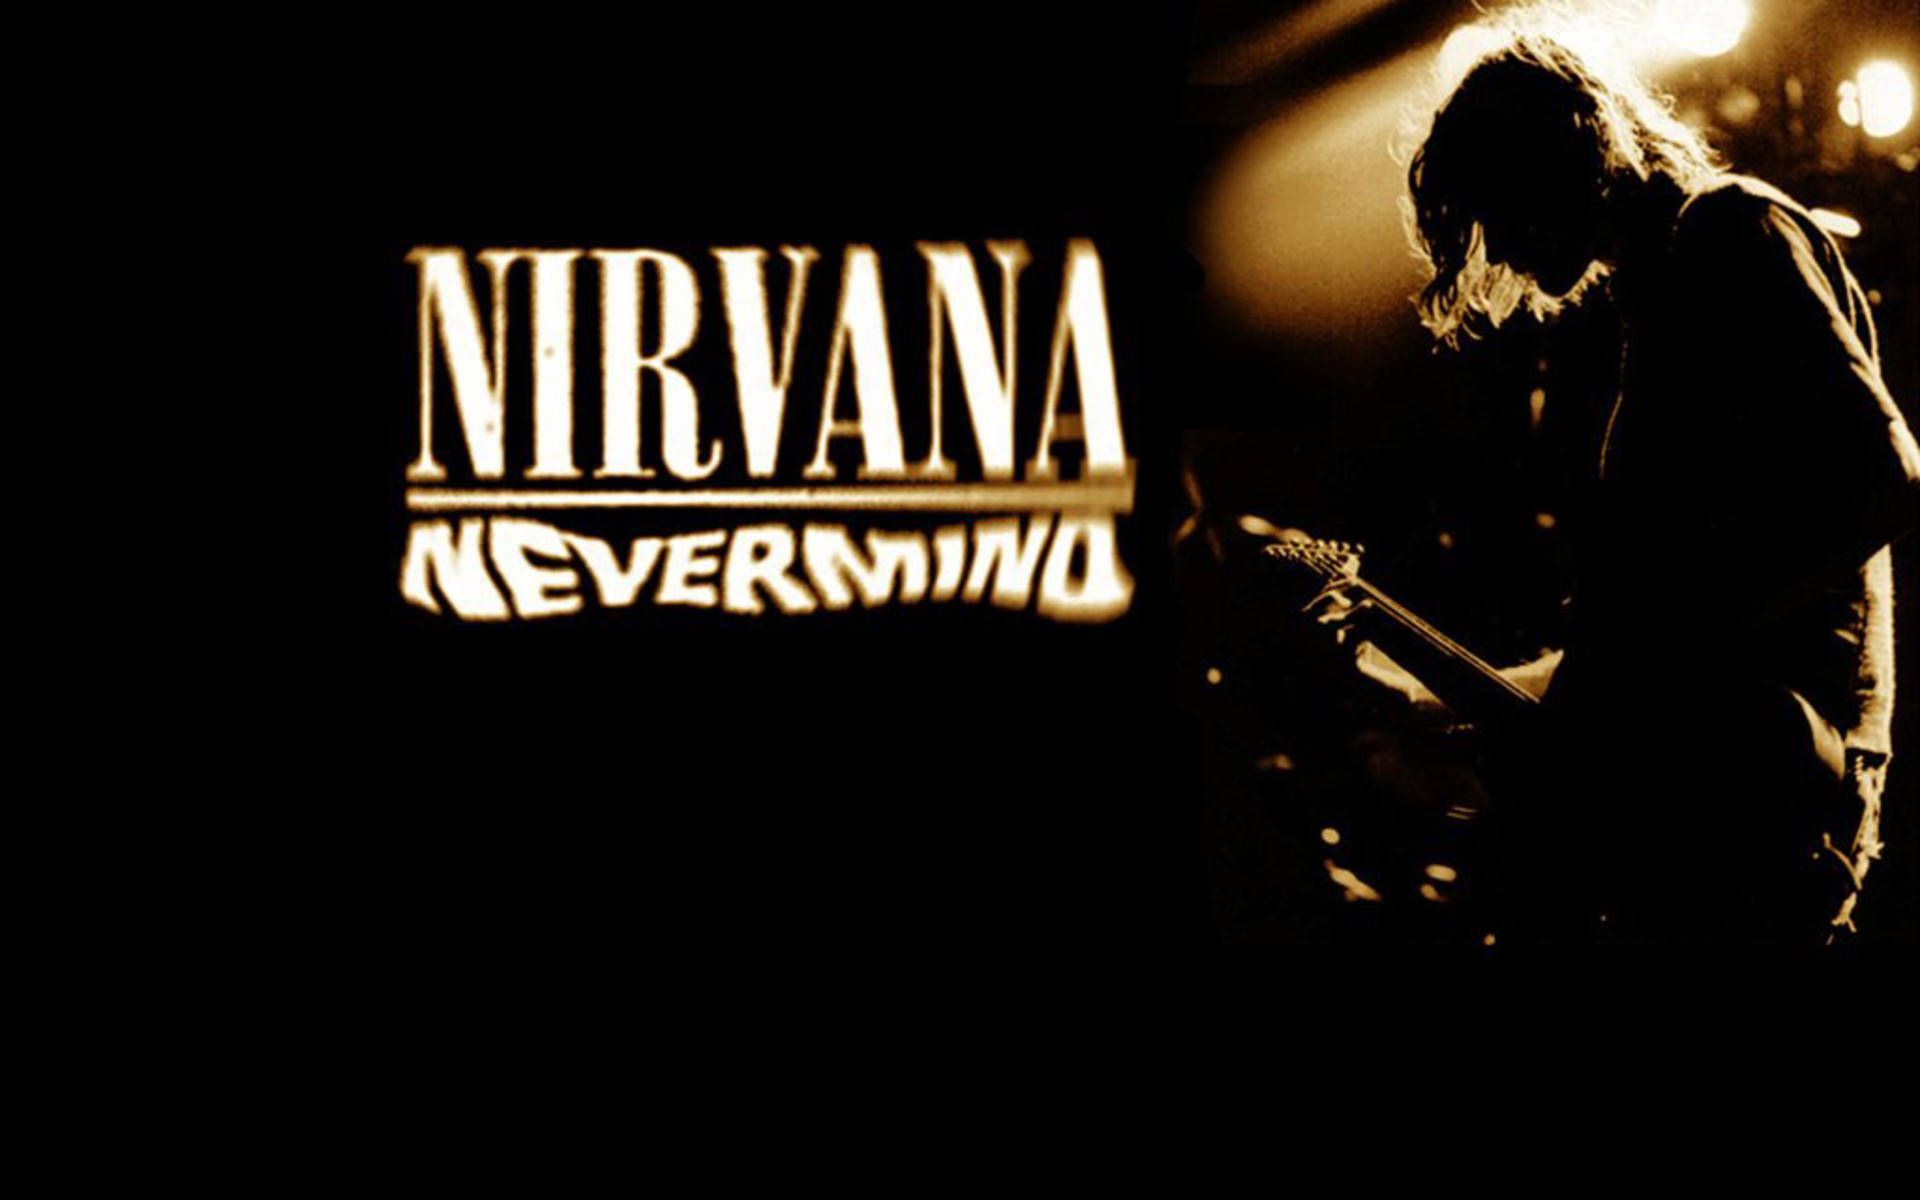 Fondos De Pantalla Wallpapers Gratis Nirvana Nevermind